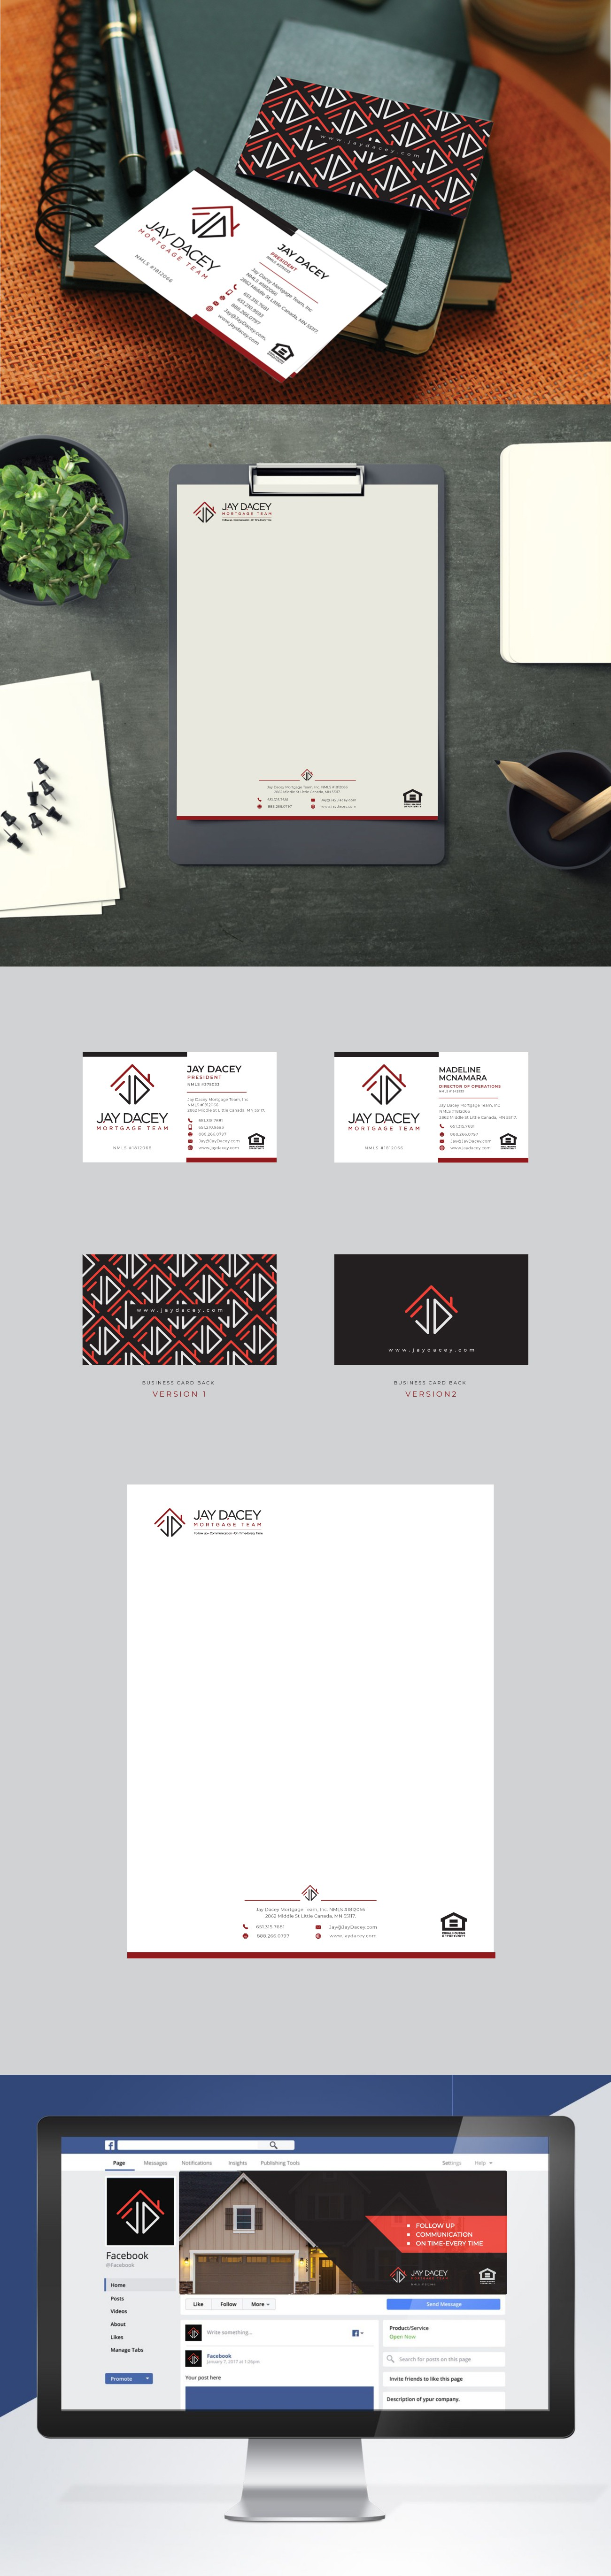 Marketing collateral for a mortgage company